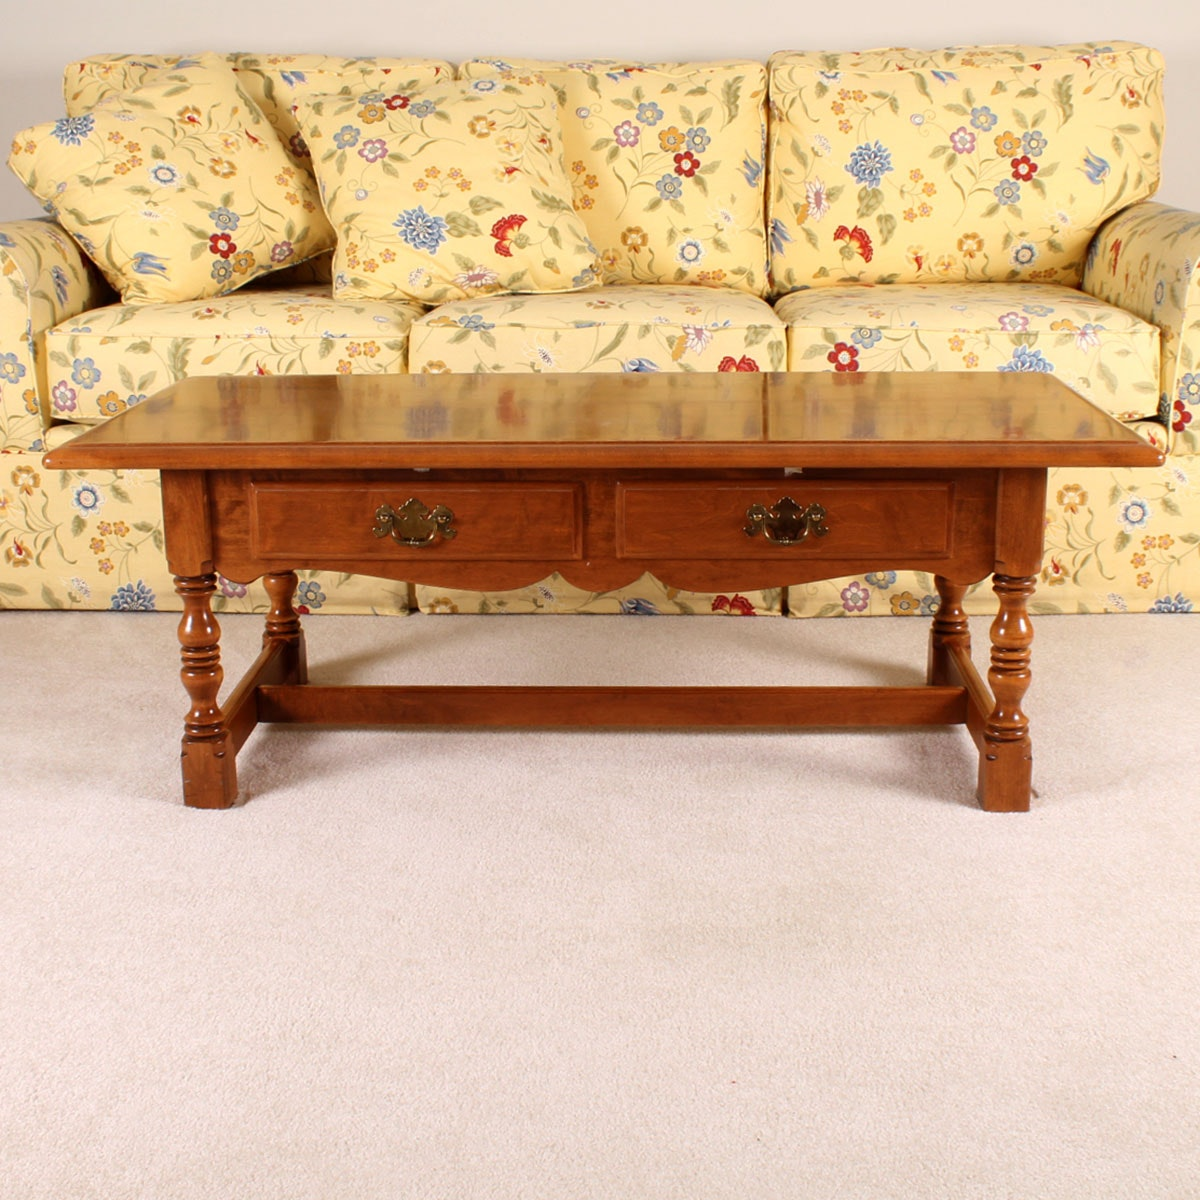 Traditional Coffee Tables Ethan Allen: Ethan Allen Traditional Coffee Table : EBTH